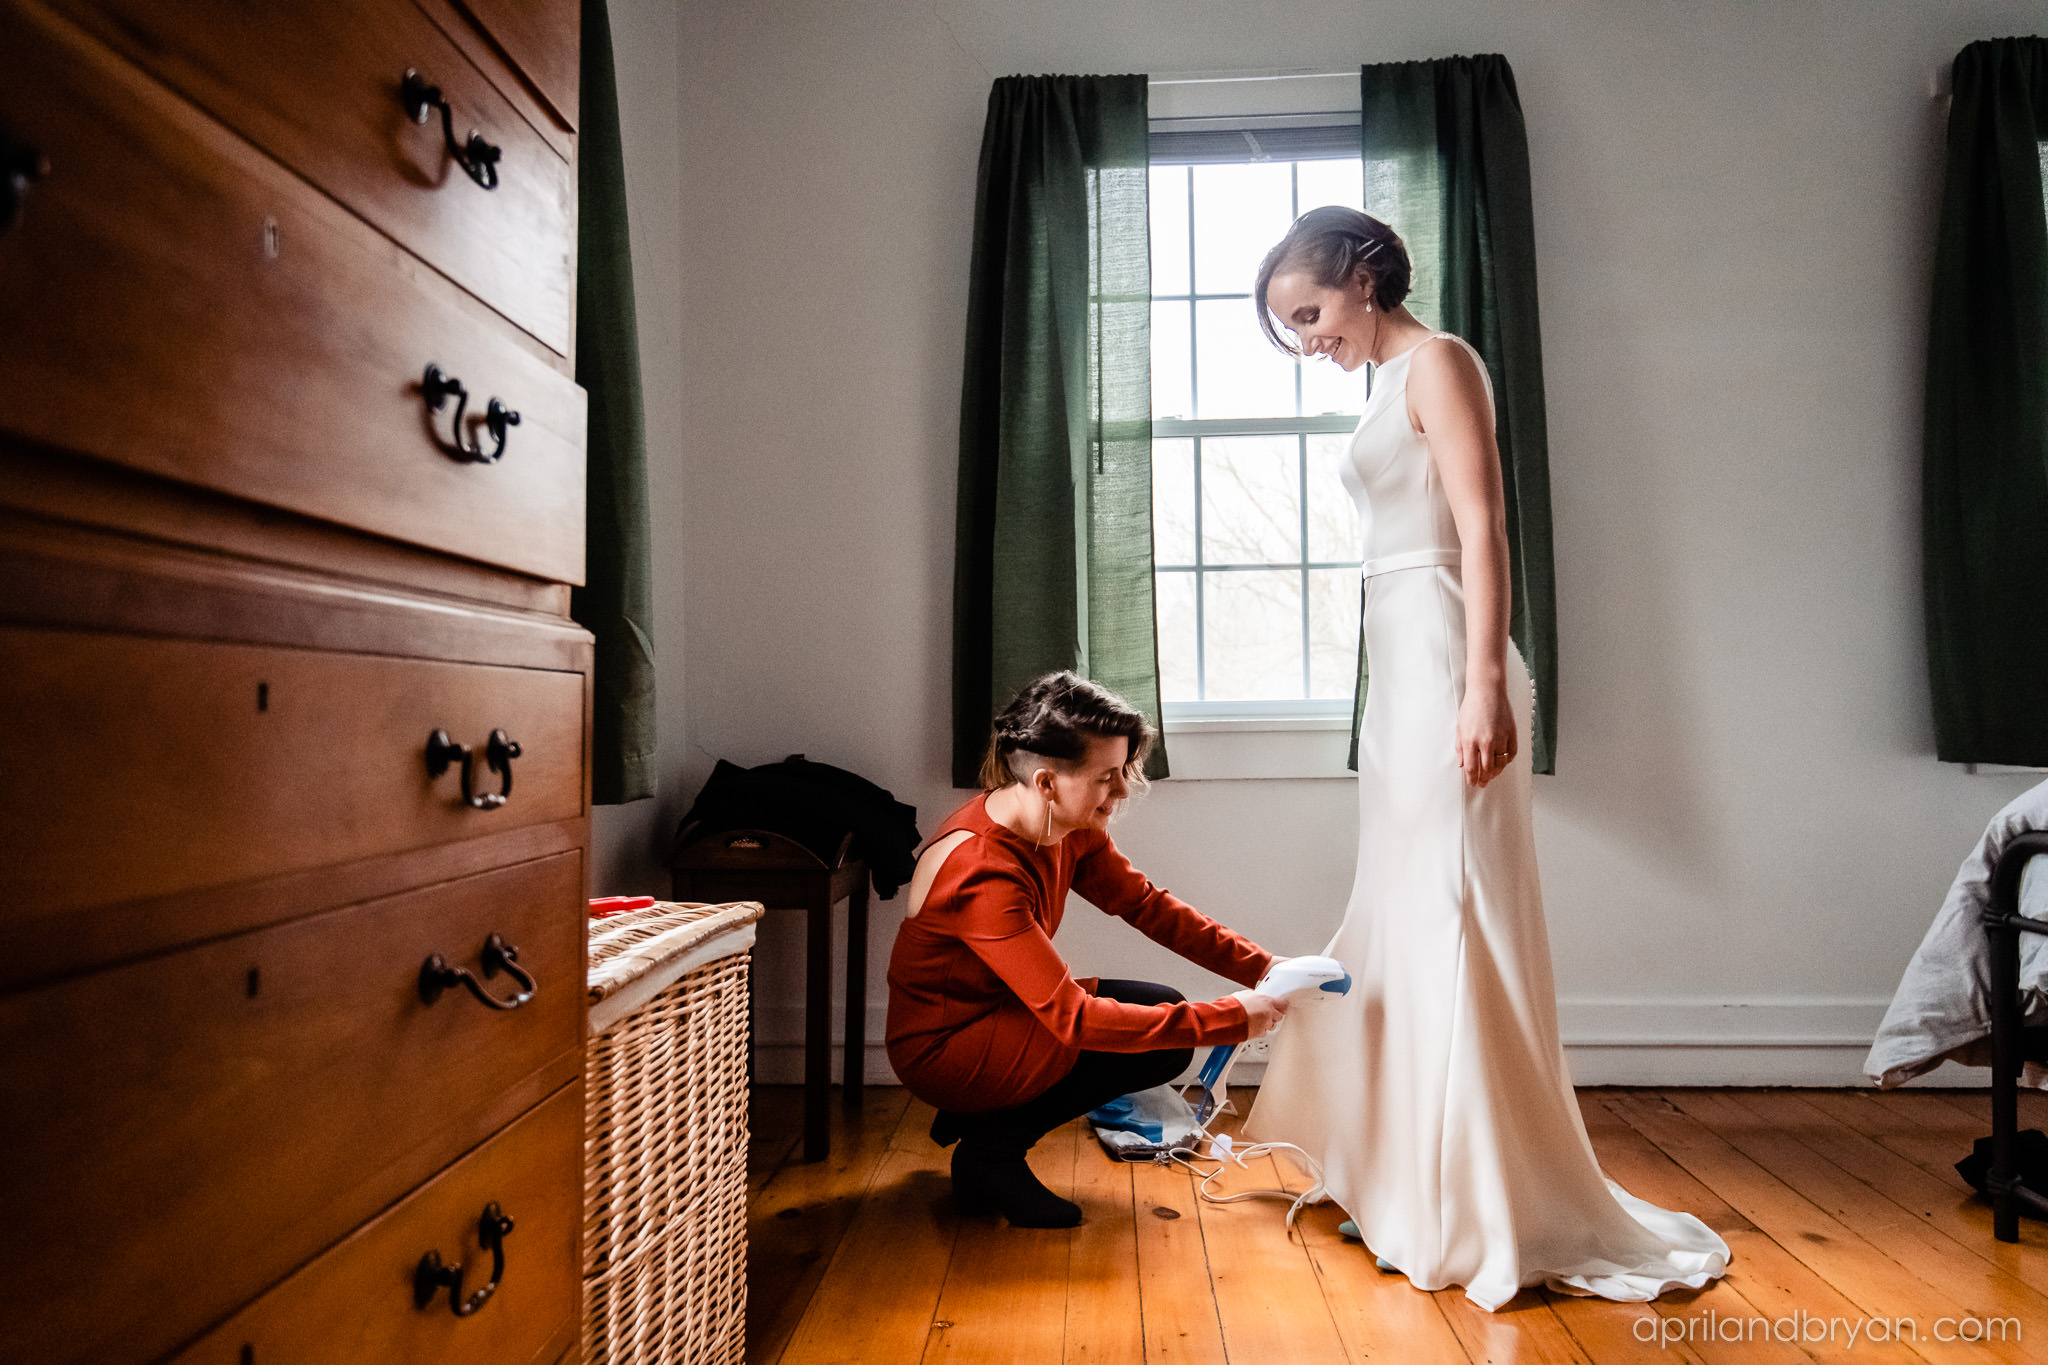 Steaming a satin dress is imperative if you want a clean, unwrinkled gown walking down the isle. Hannah and Ethan Farrell had their classic romantic styled wedding held at their home in Mount Joy, followed by a reception at the catacombs underneath Bube's Brewery. Photographed by April & Bryan Photography, the couple had the opportunity to showcase their early 1900s style and accommodate a small guest list. Featured on Dream Weddings.